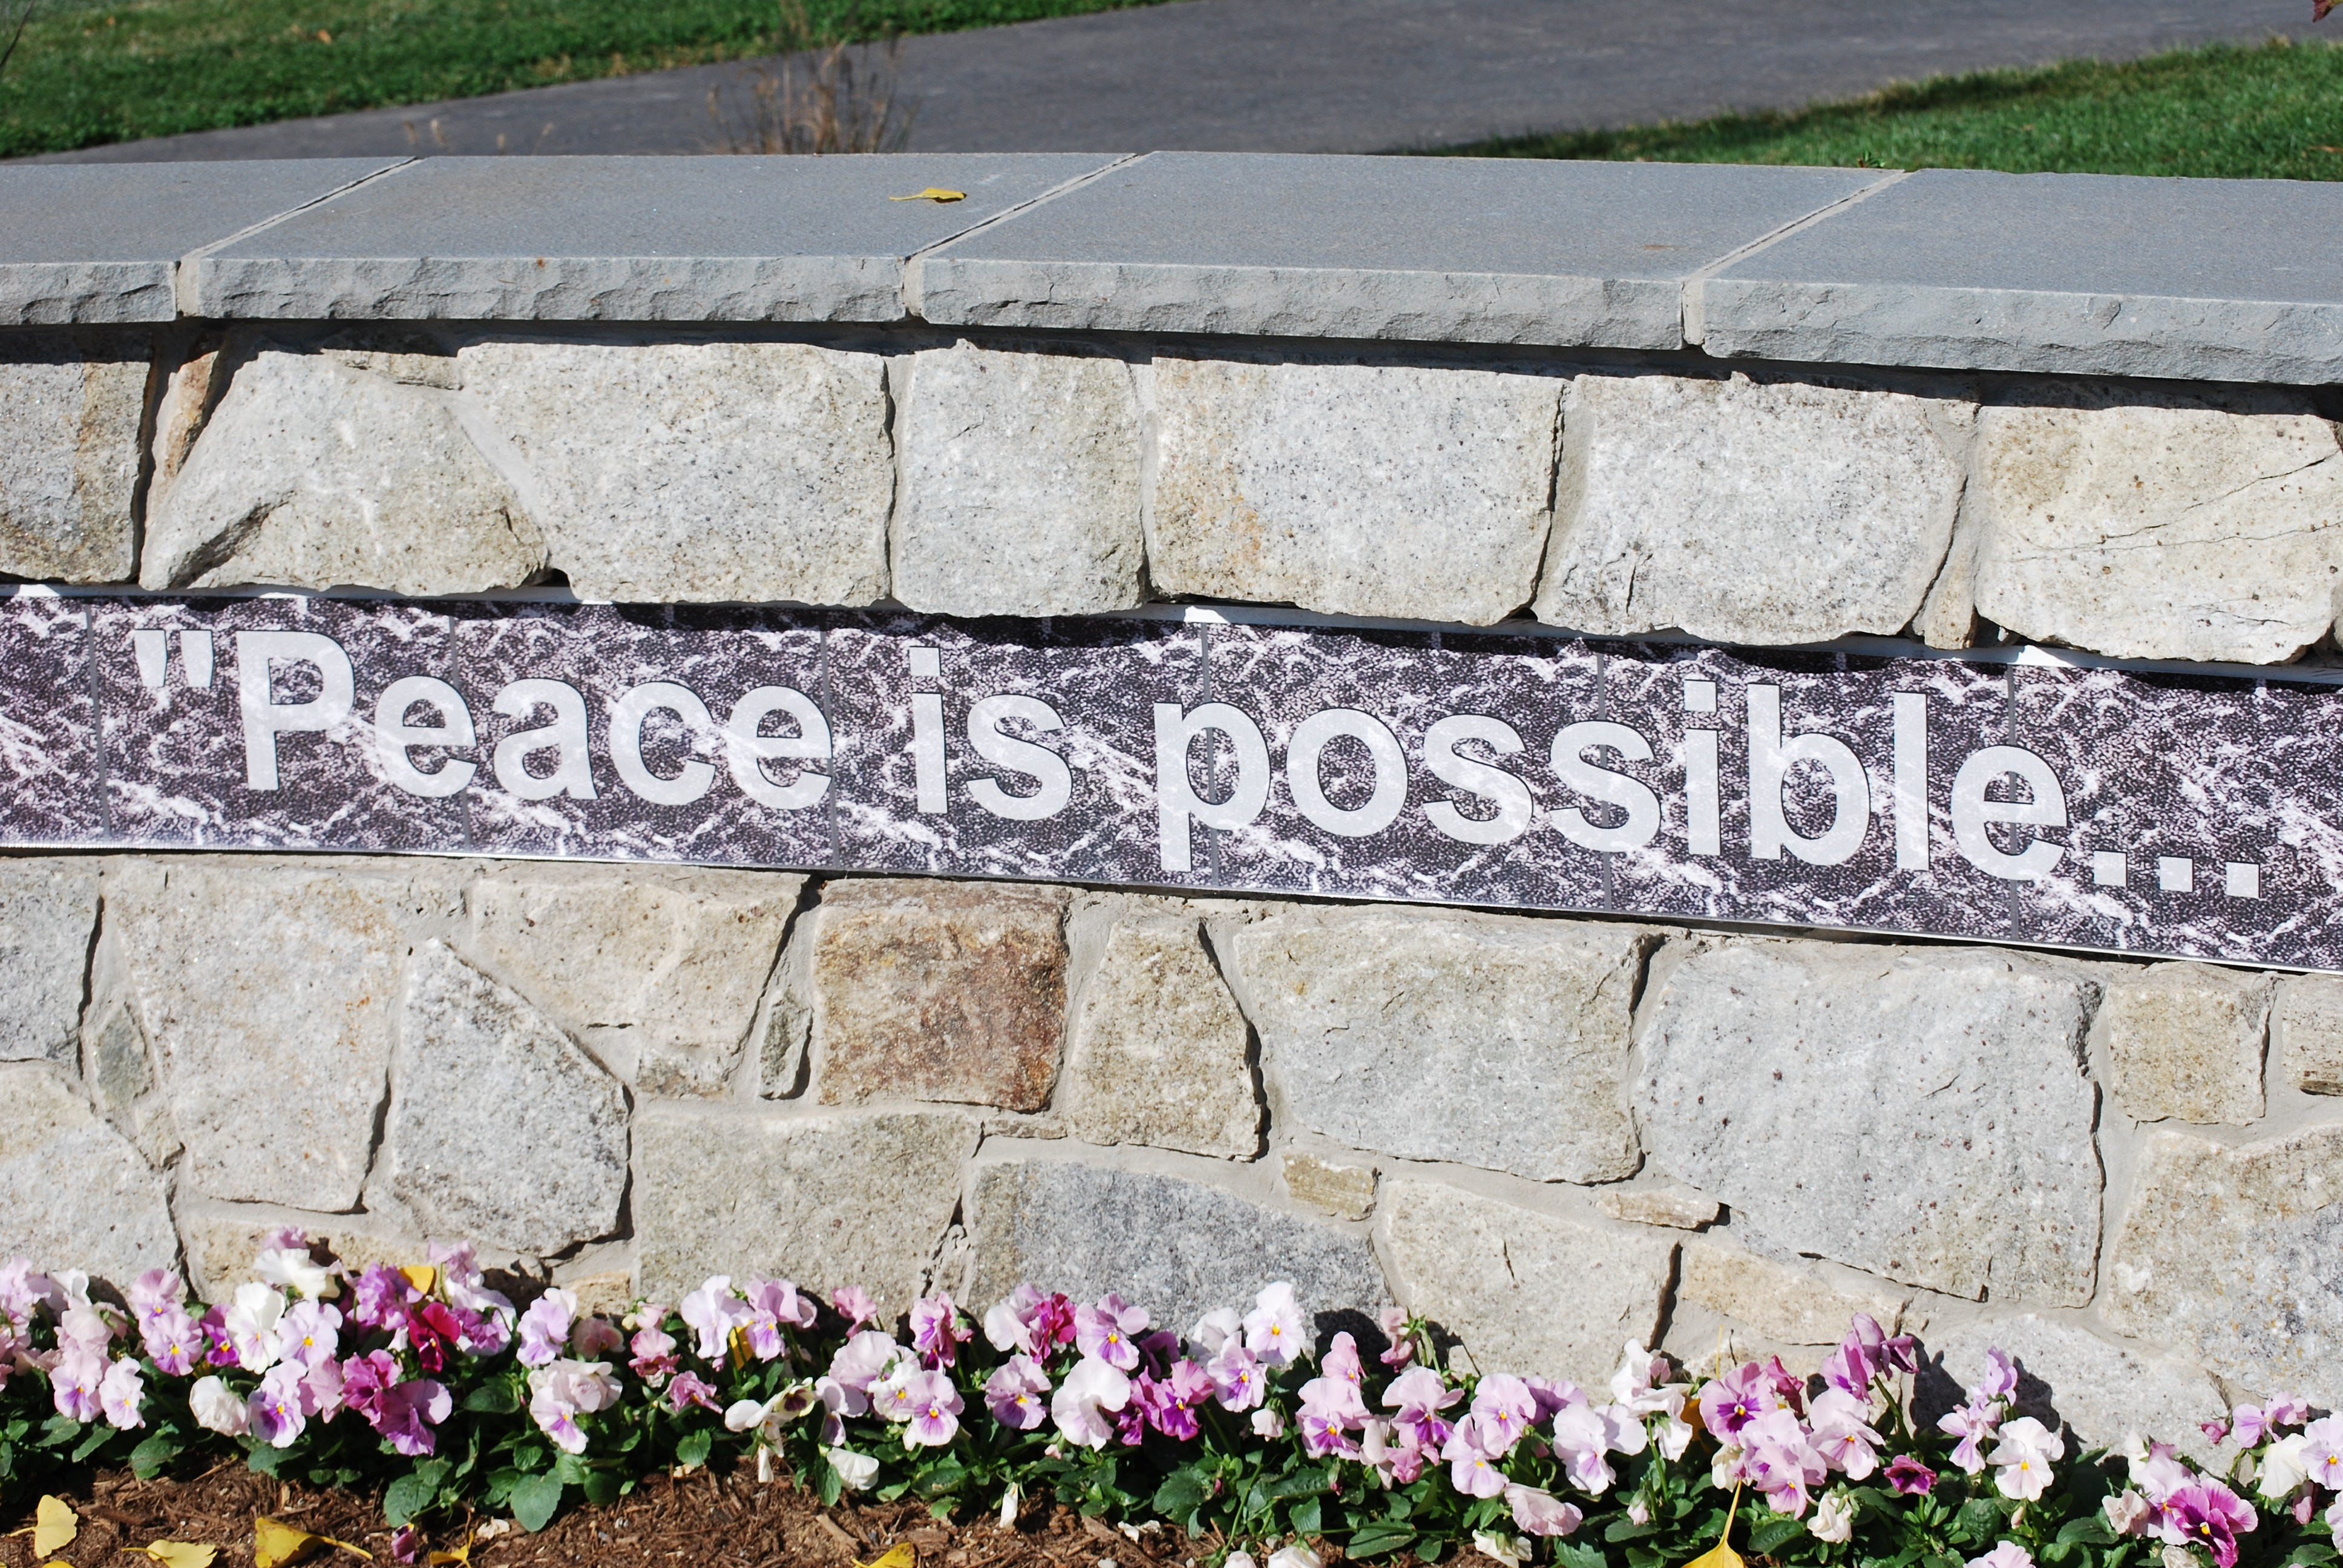 Mattie Stepanek Park - Peace is Possible